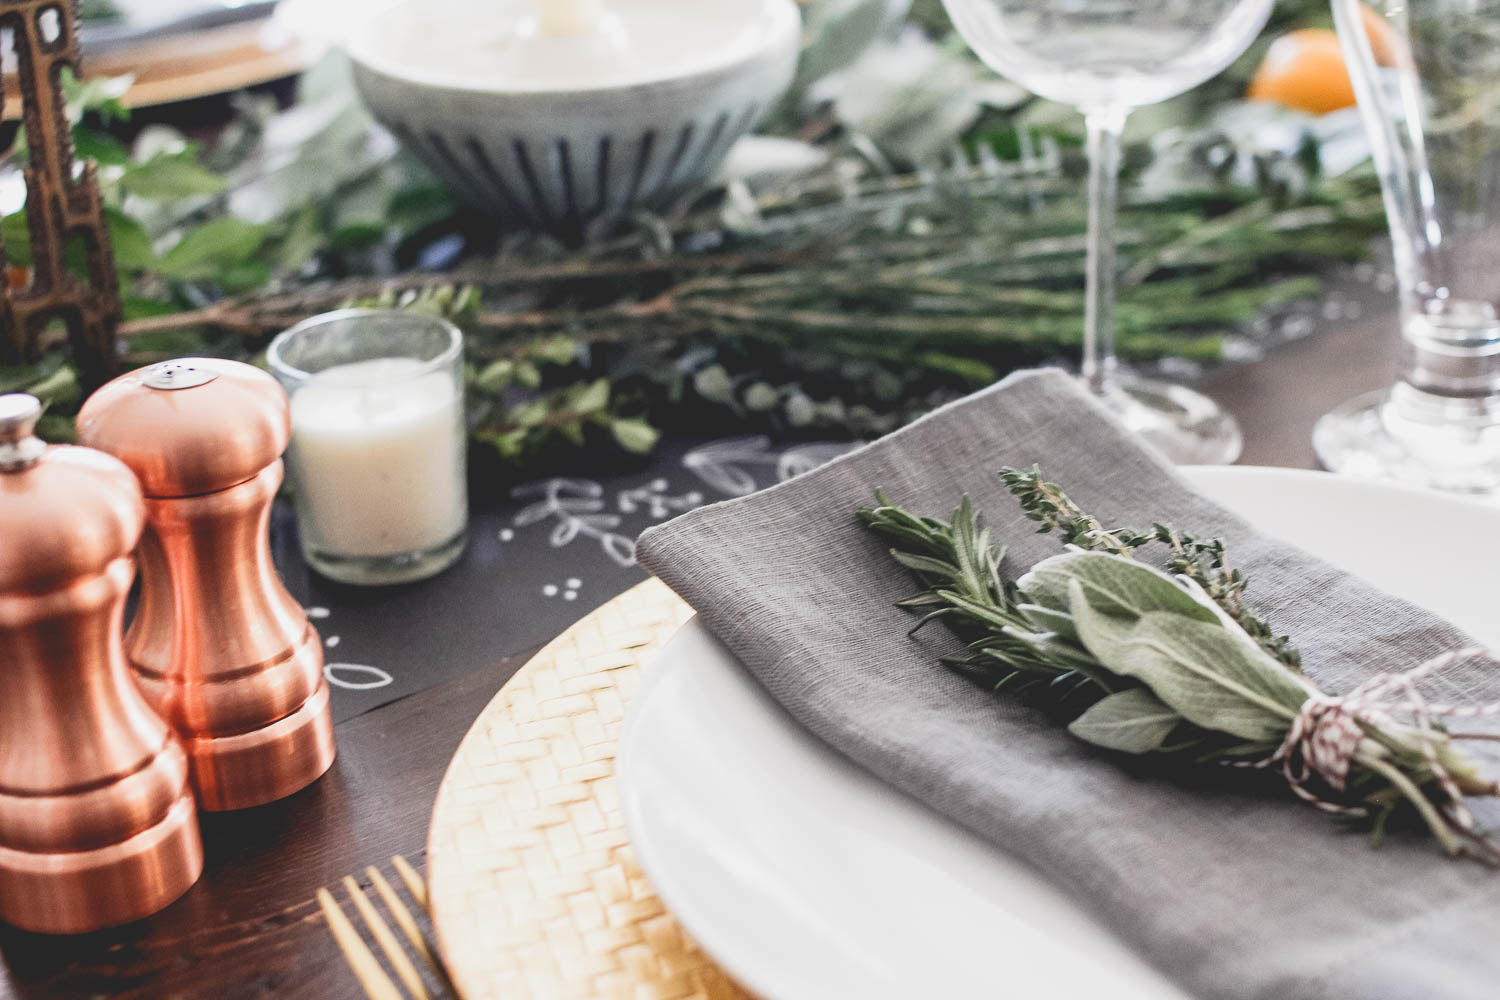 Holiday place setting with herb bouquet